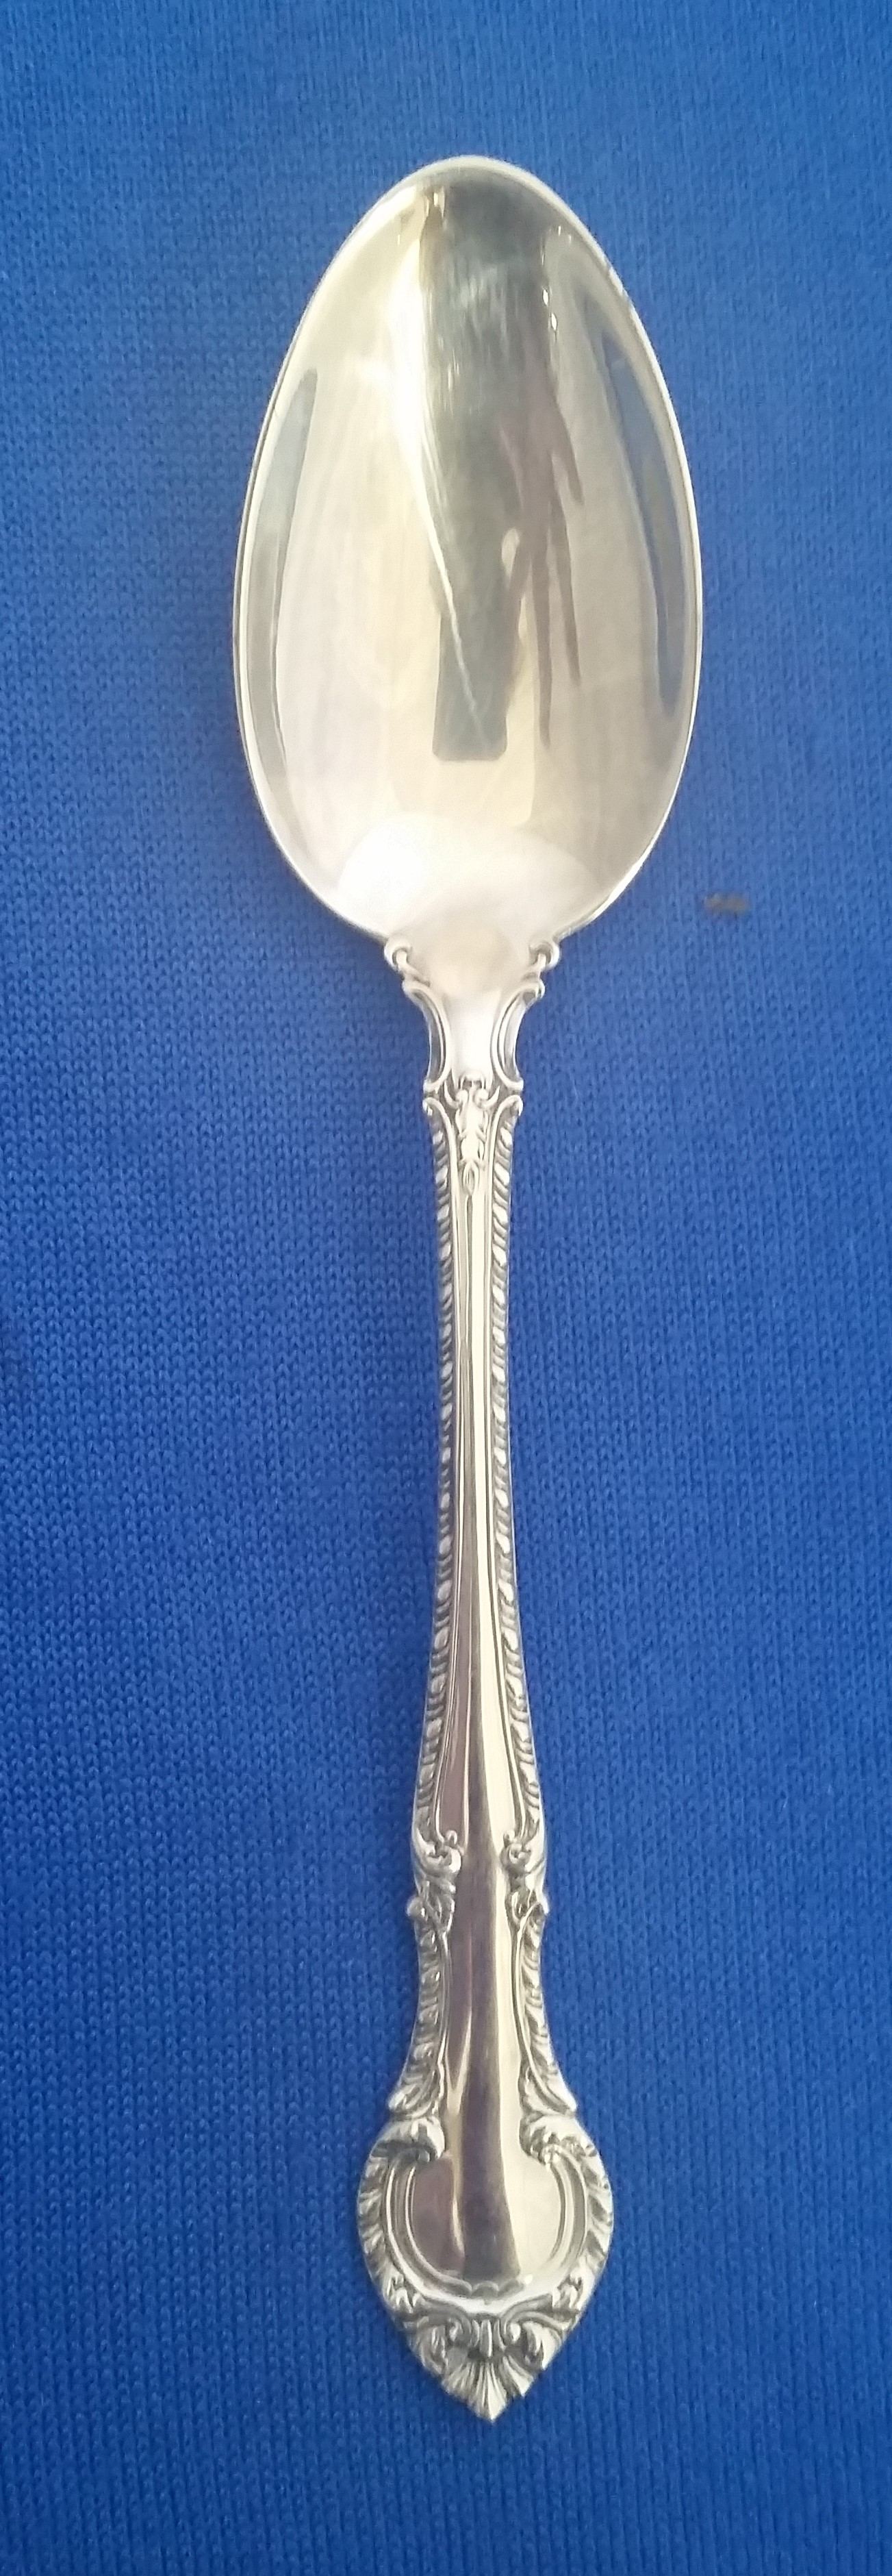 Gorham - 'English Gadroon' - Demitasse Spoon